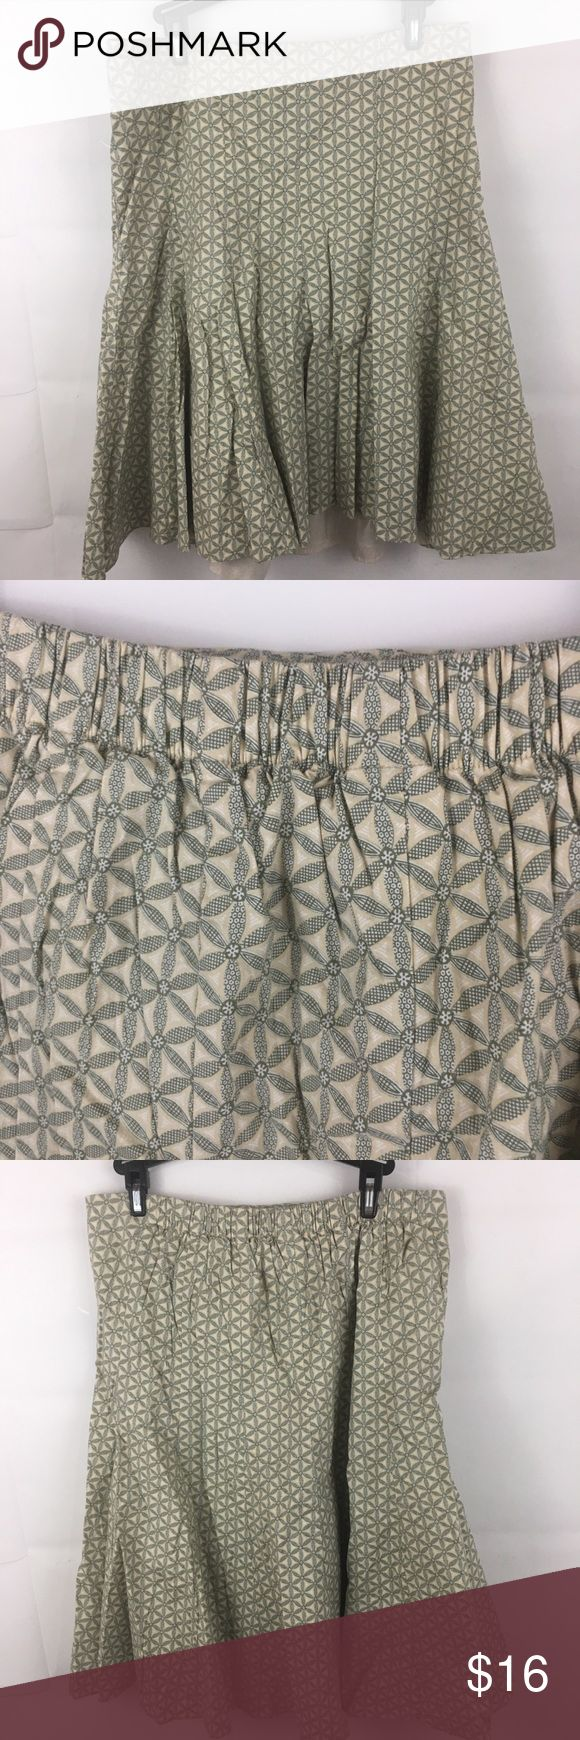 Gap Maternity Trumpet Skirt Size 10 Green Floral Gap maternity skirt size 10  trumpet style skirt, lined, green and white floral  good pre-owned condition.  No holes or stains. Initials on inside tag.  stretch waist with elastic back  22 inch length GAP Skirts